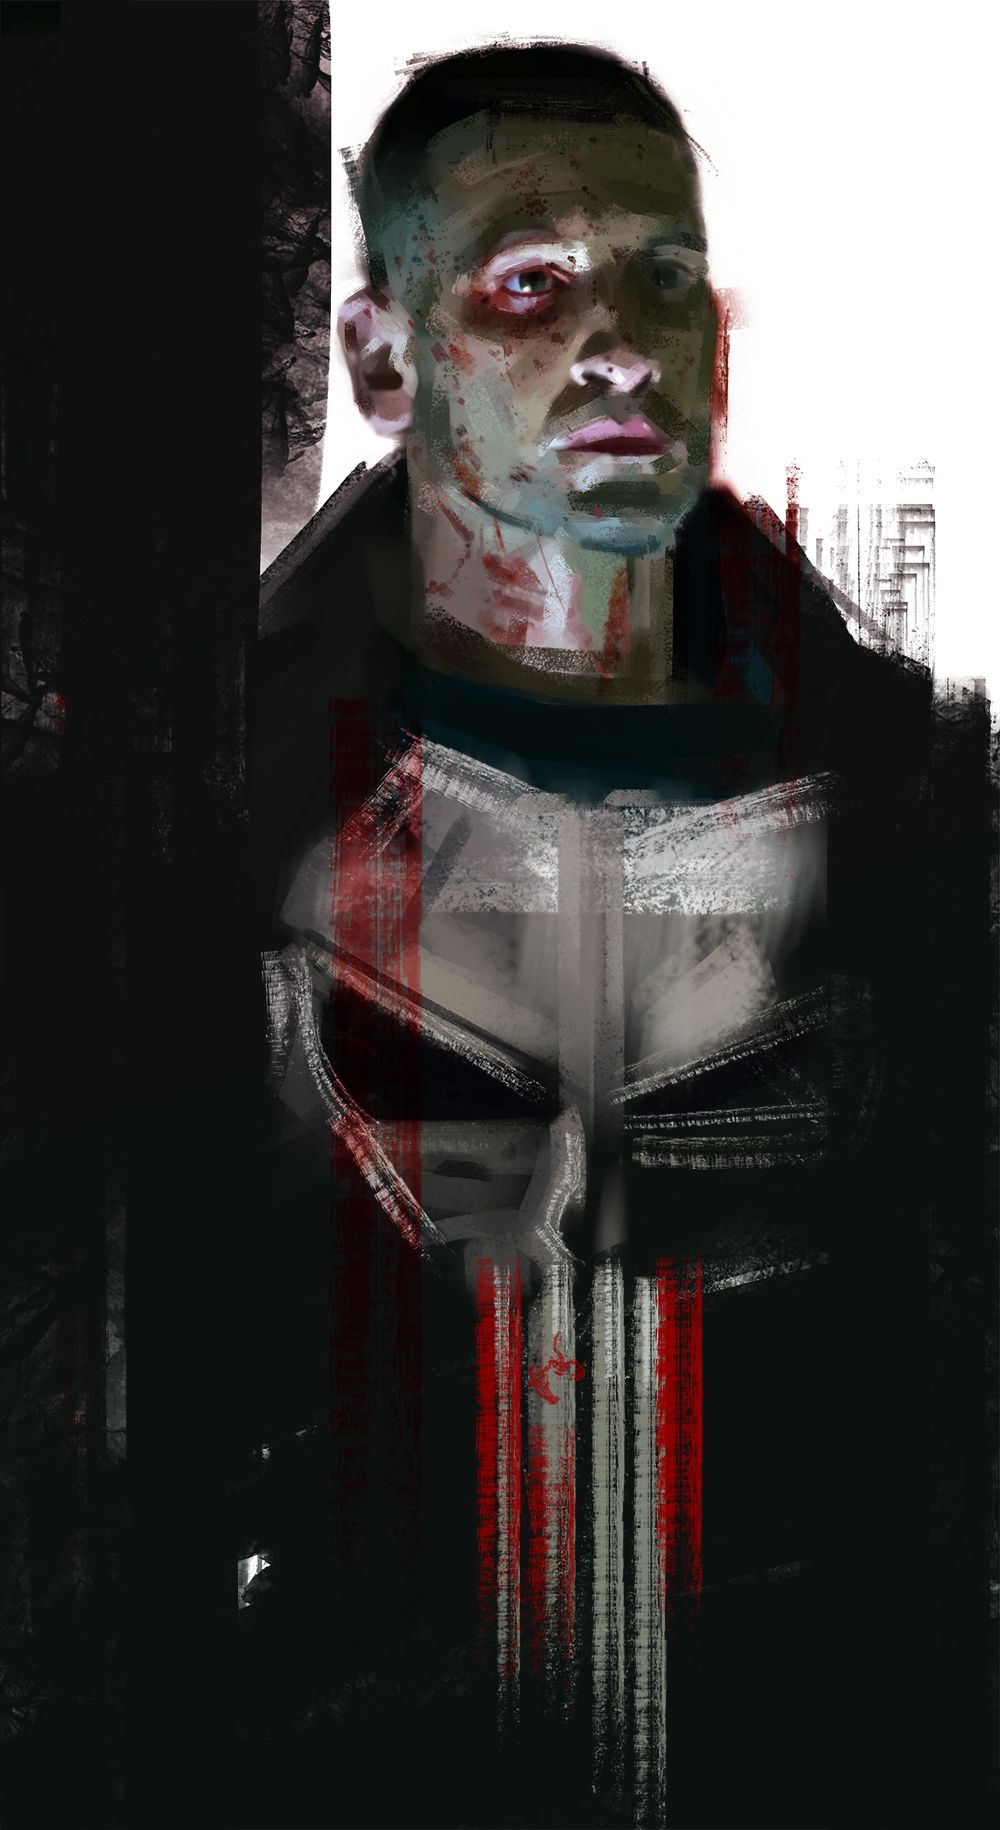 Frank Castle Aka The Punisher Played By Jon Bernthal Daredevil